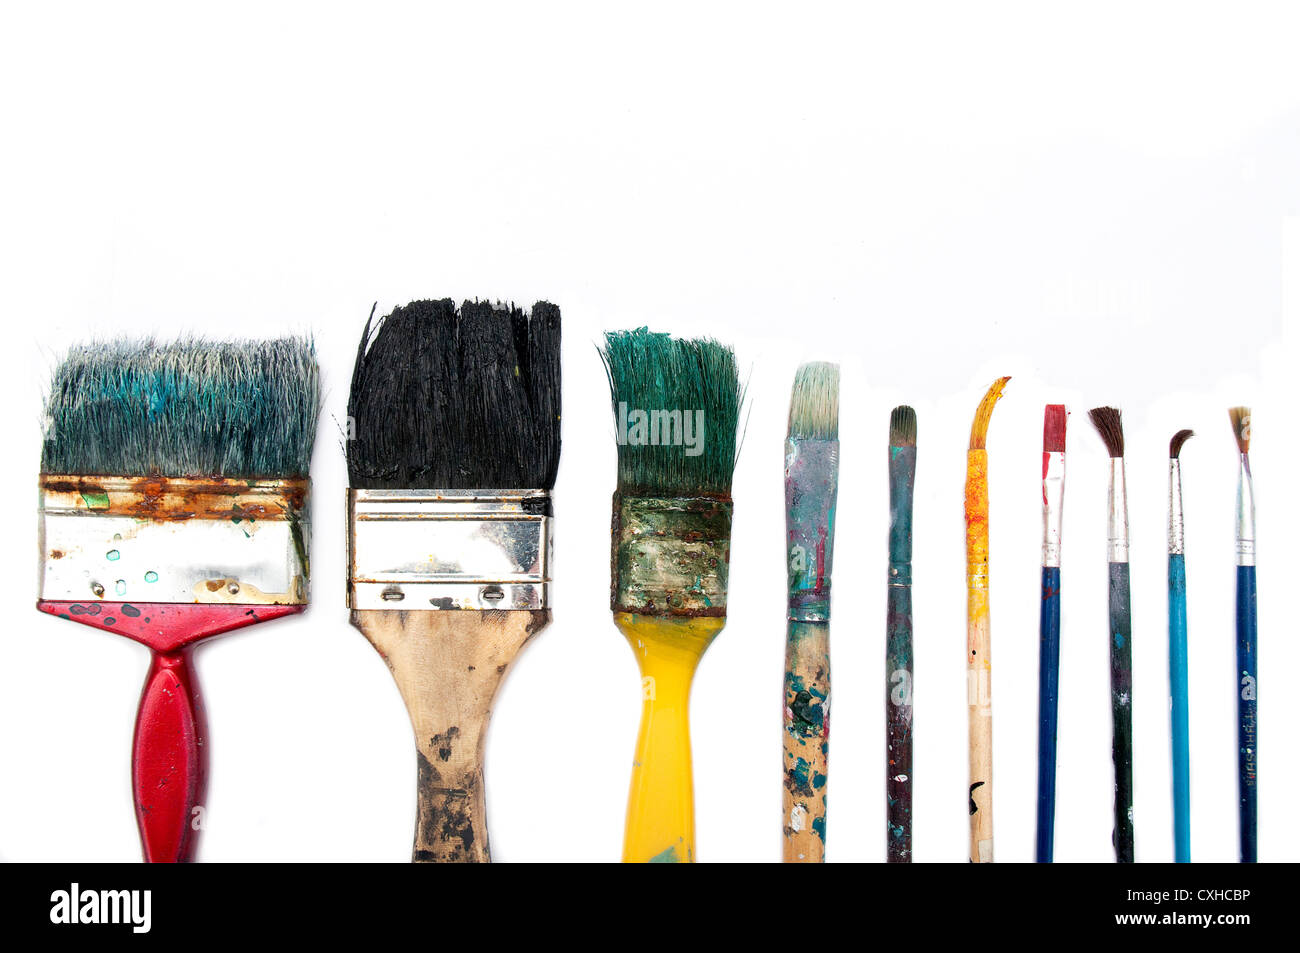 Brushes used in different sizes - Stock Image